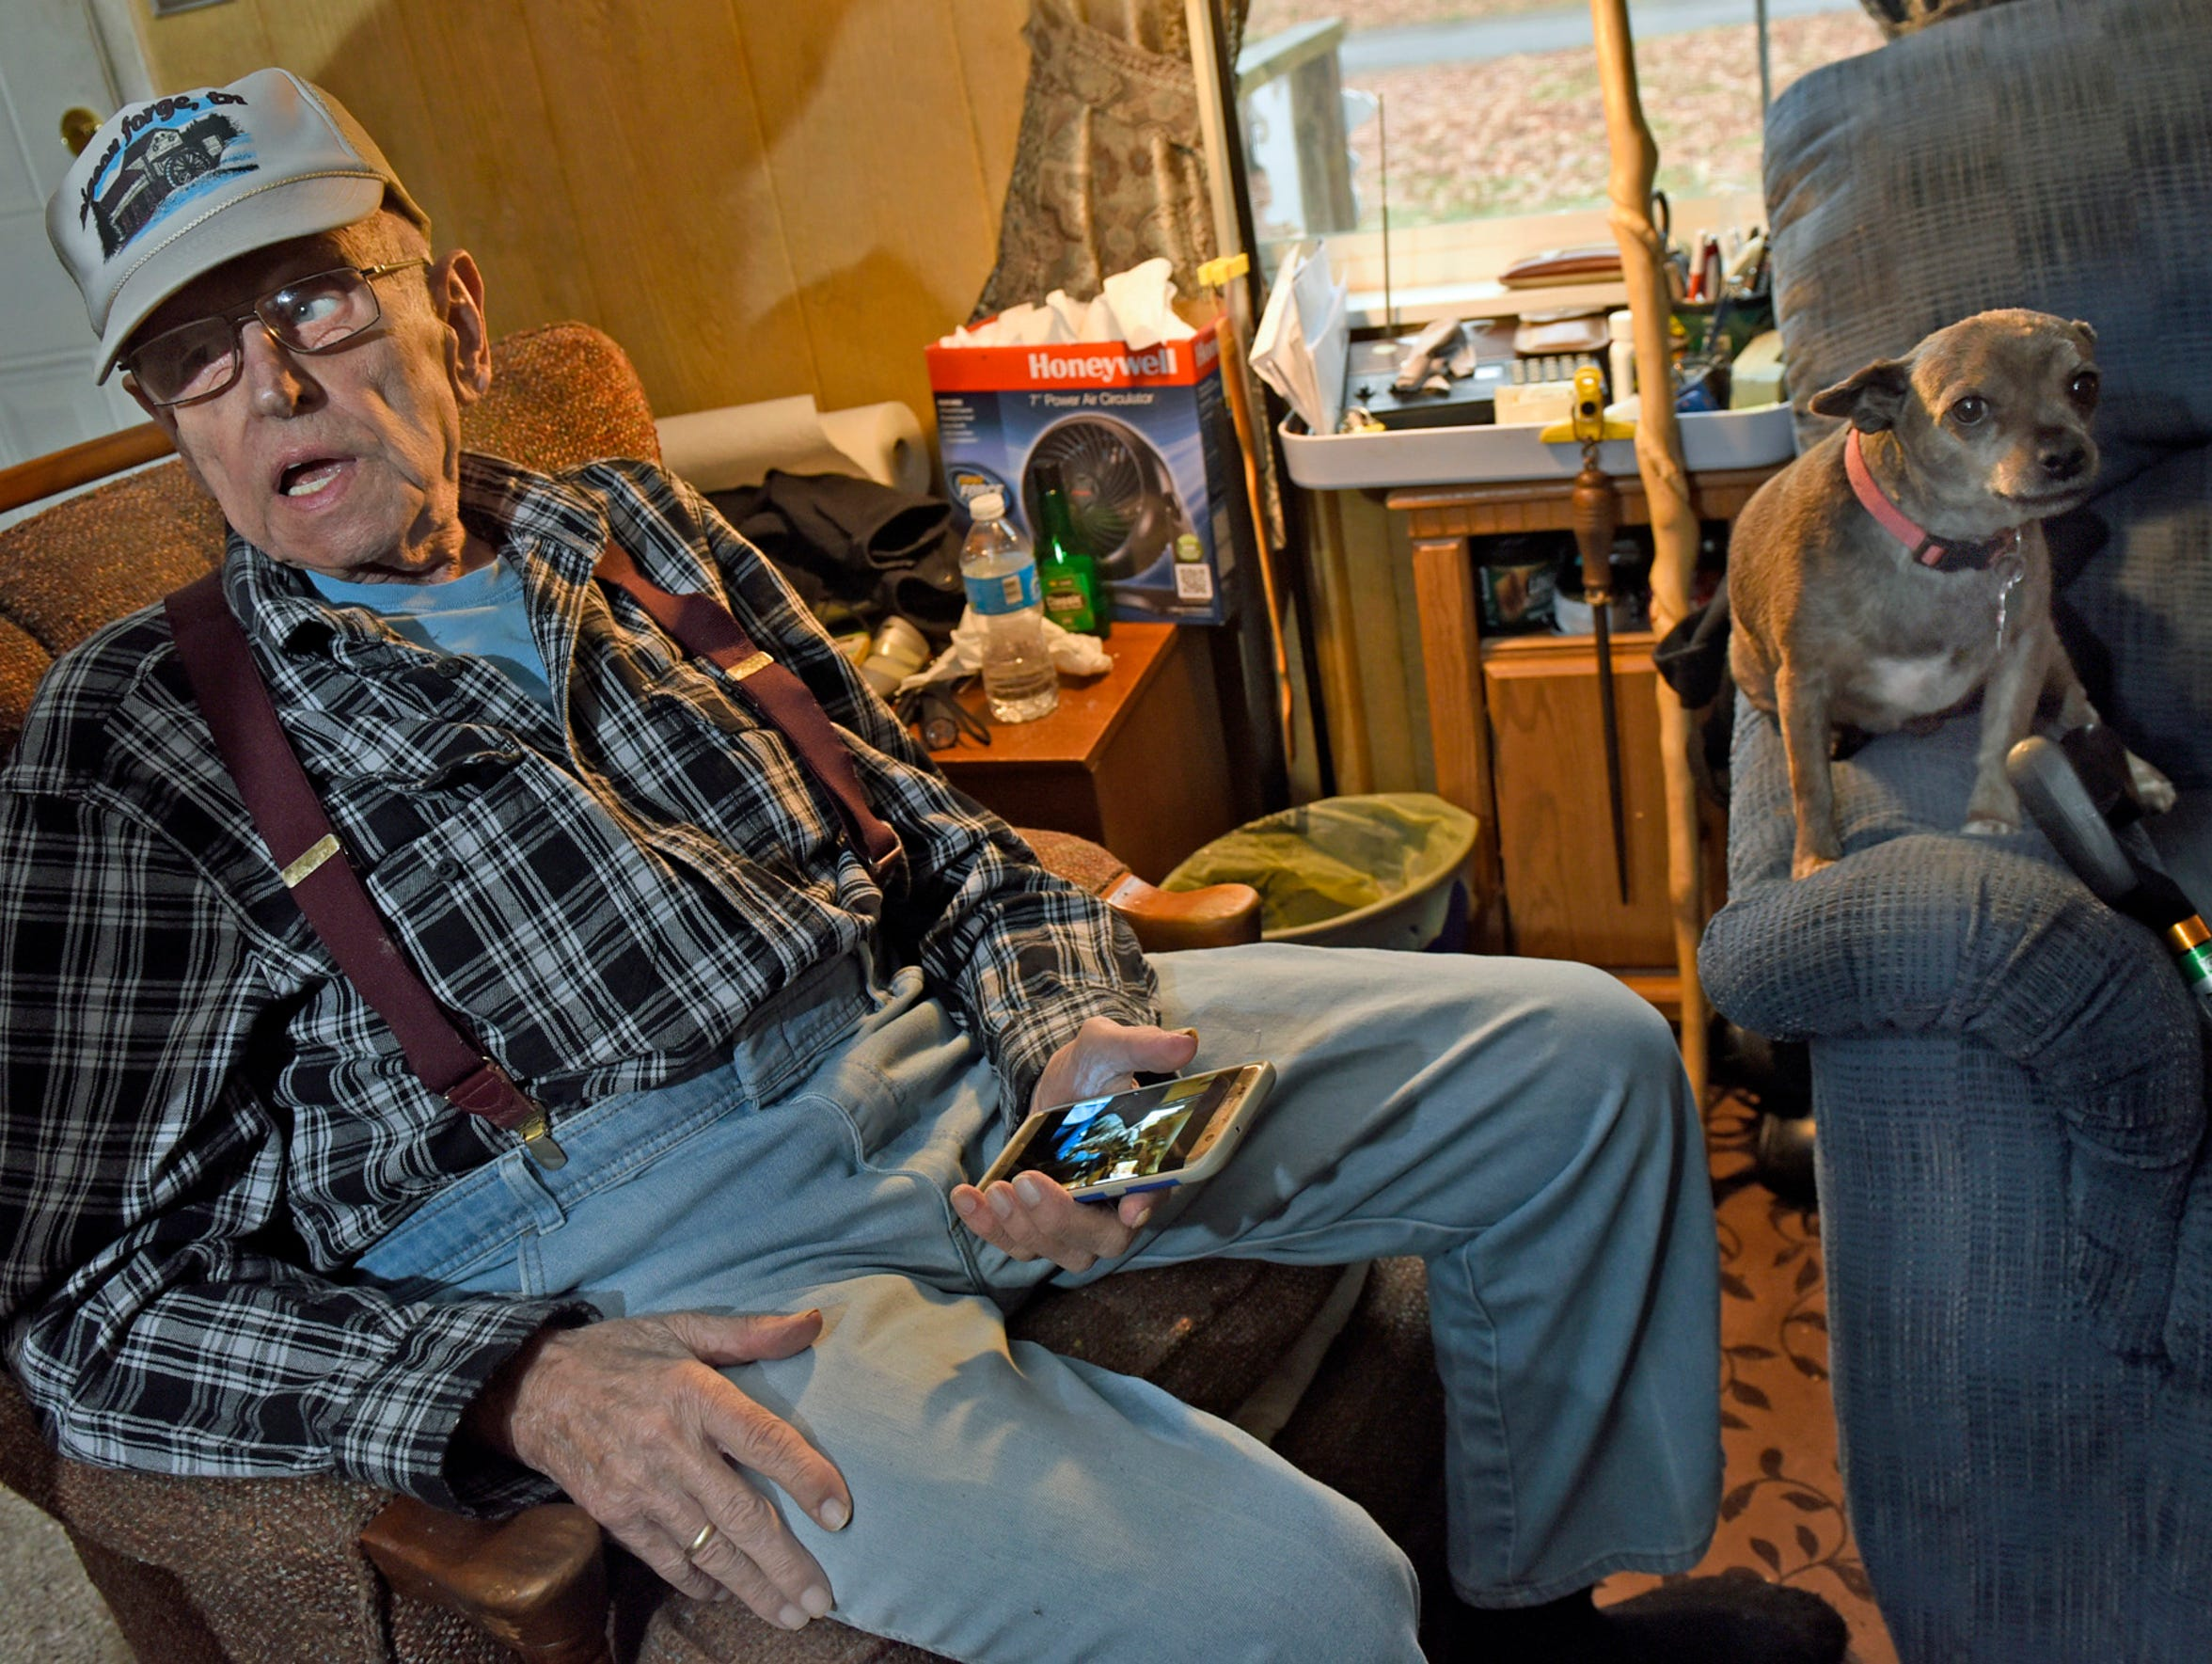 Richard Lehman spends time with his dog, Rascal, in